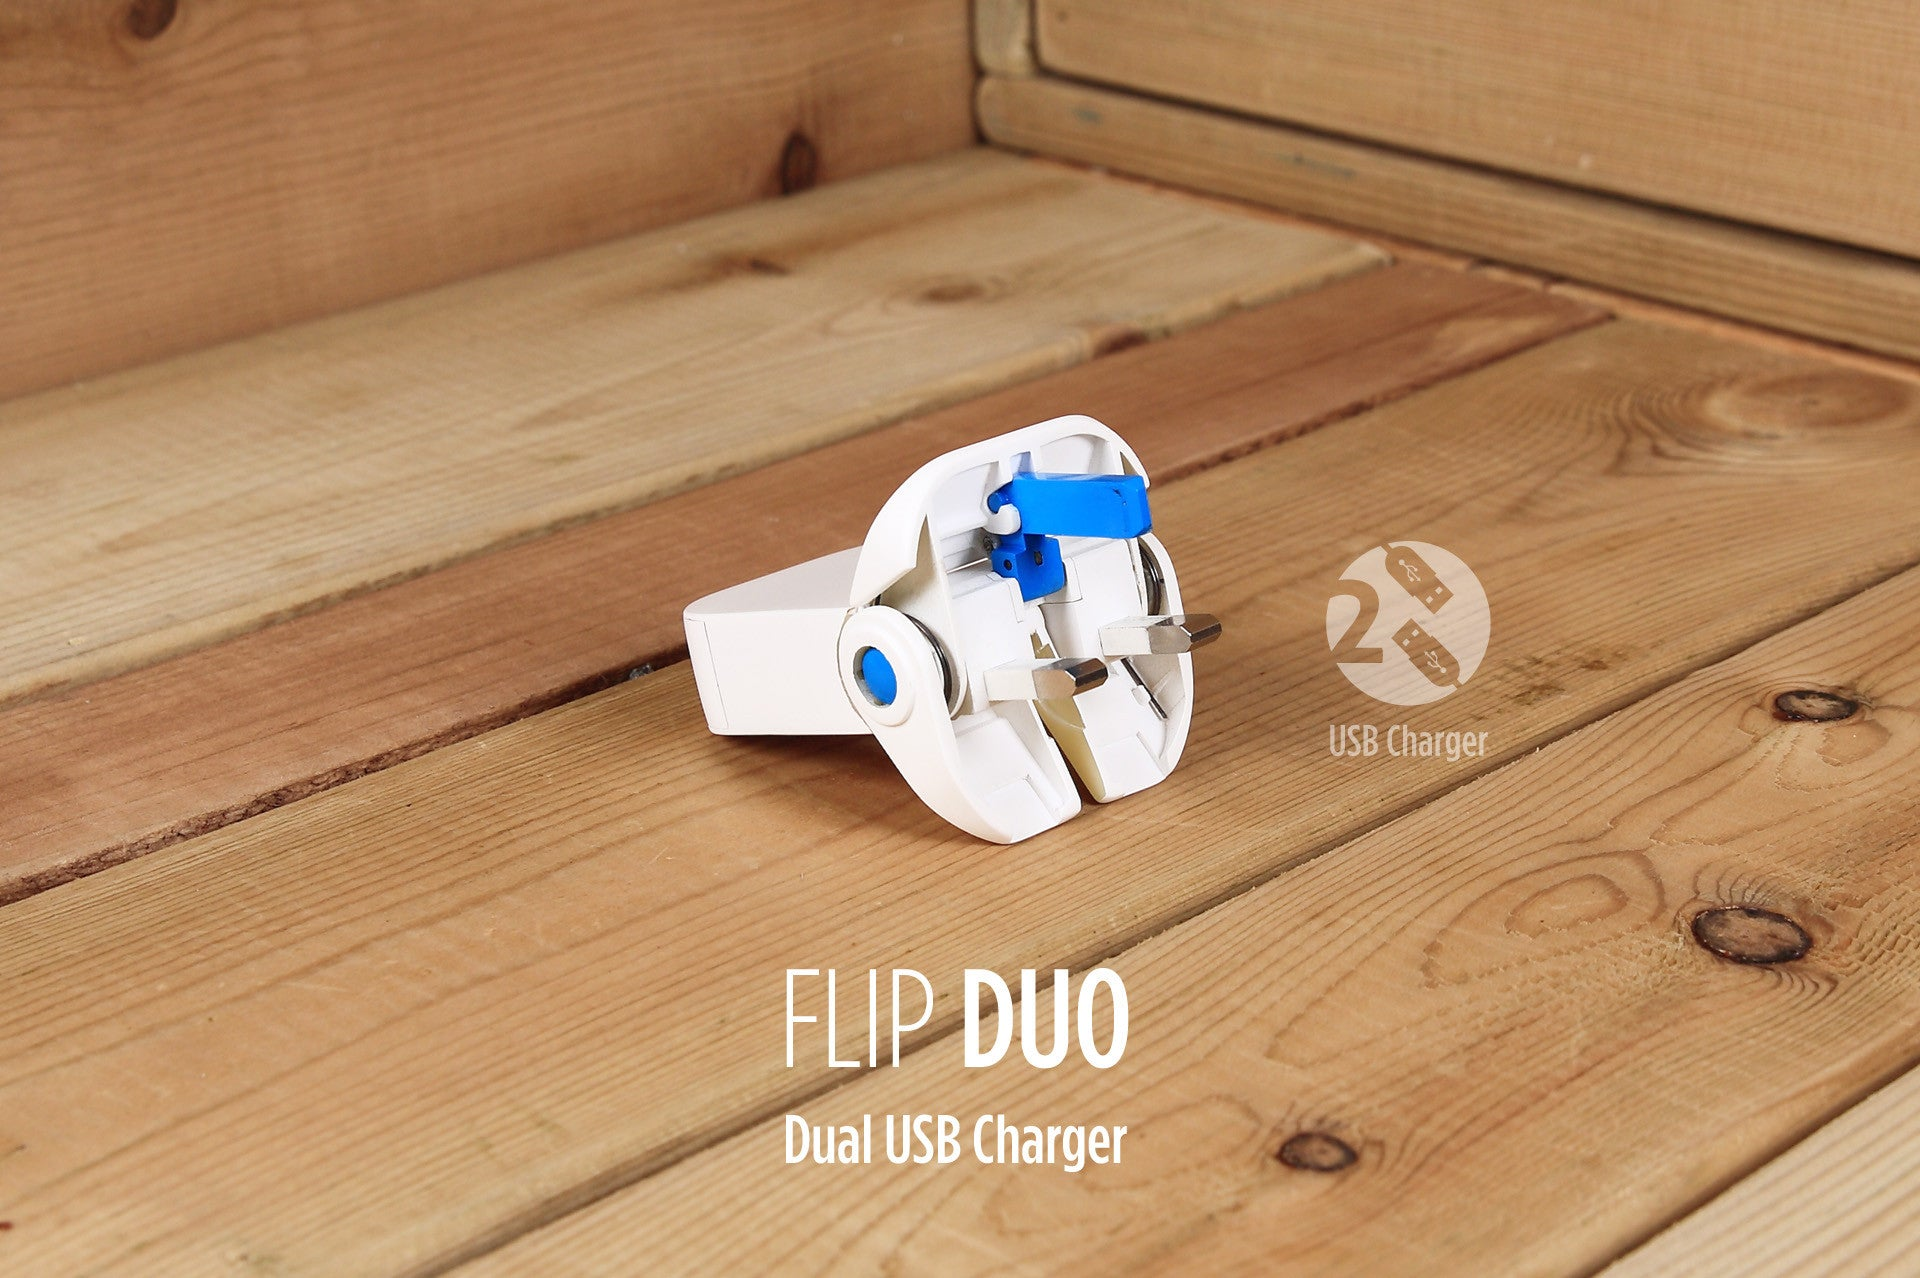 table usb charger. flip duo - dual usb charger adapter oneadaptr table usb